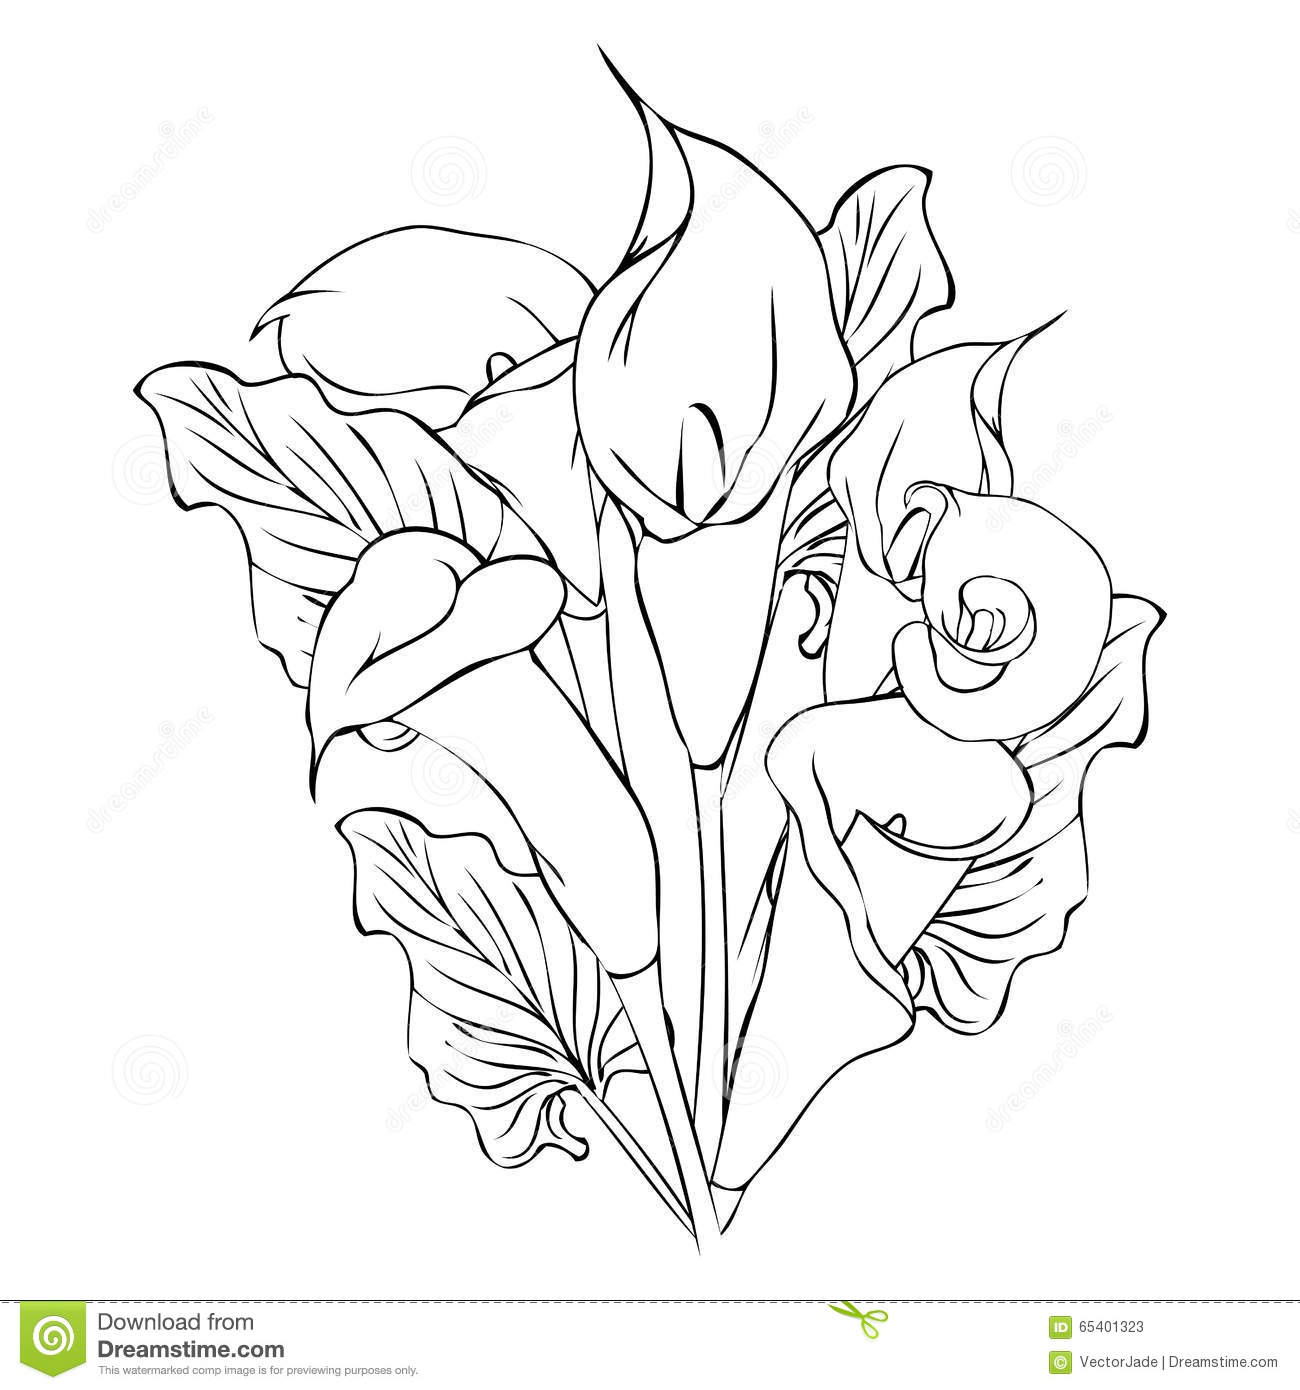 1300x1390 Drawings Of Calla Lilies Calla Lily Flower Drawing